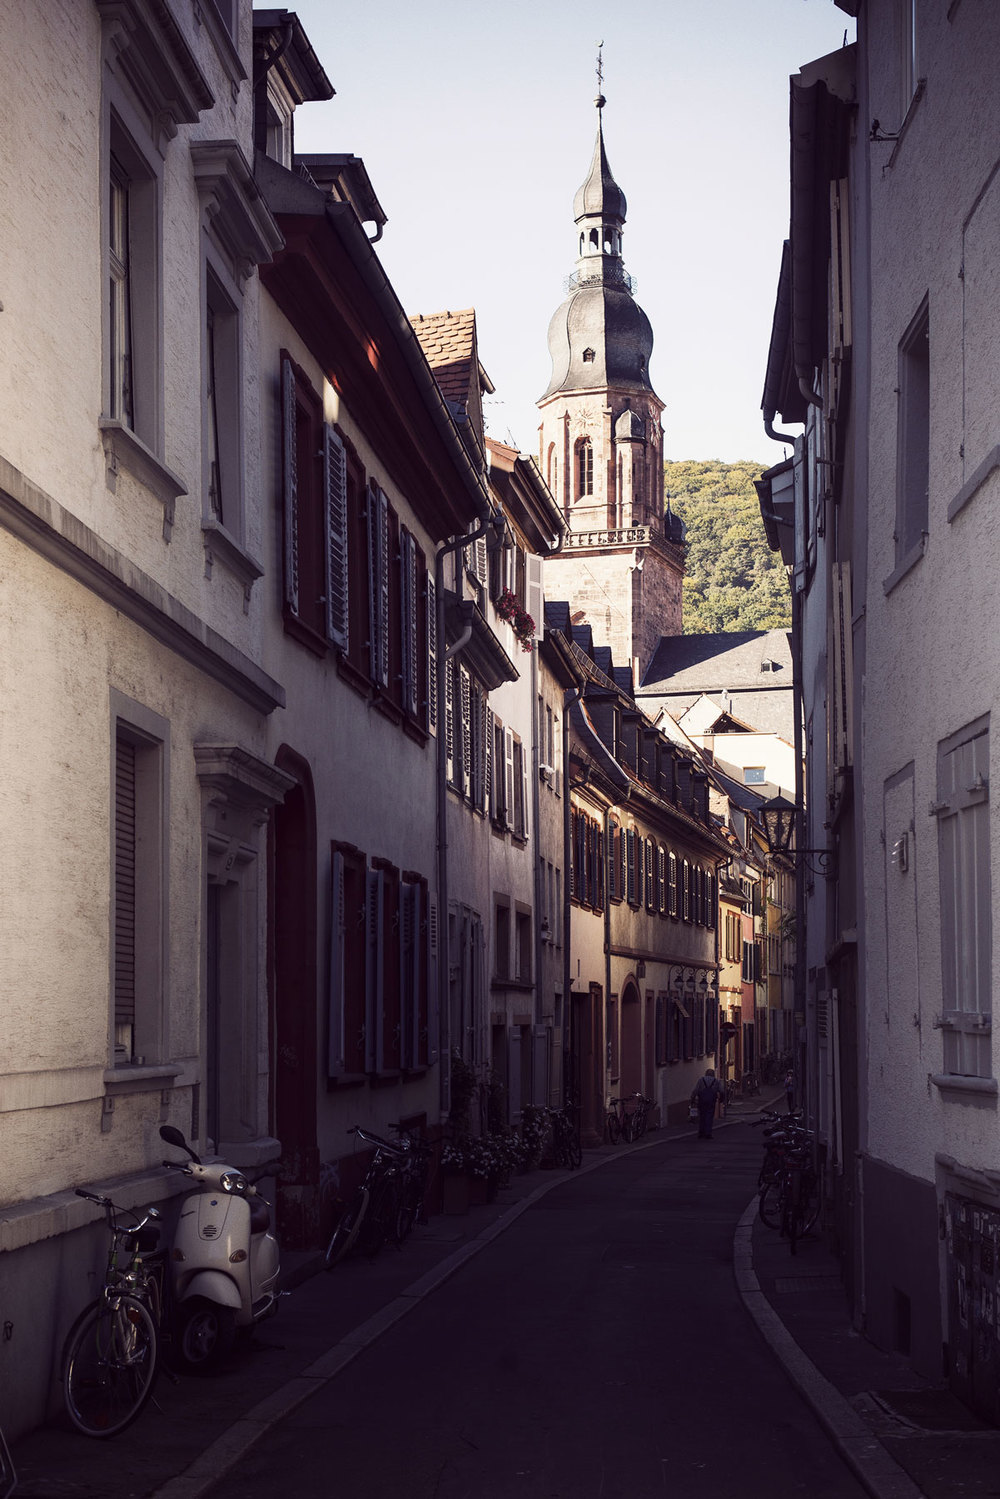 September: I moved (temporarily) to Heidelberg, Germany!